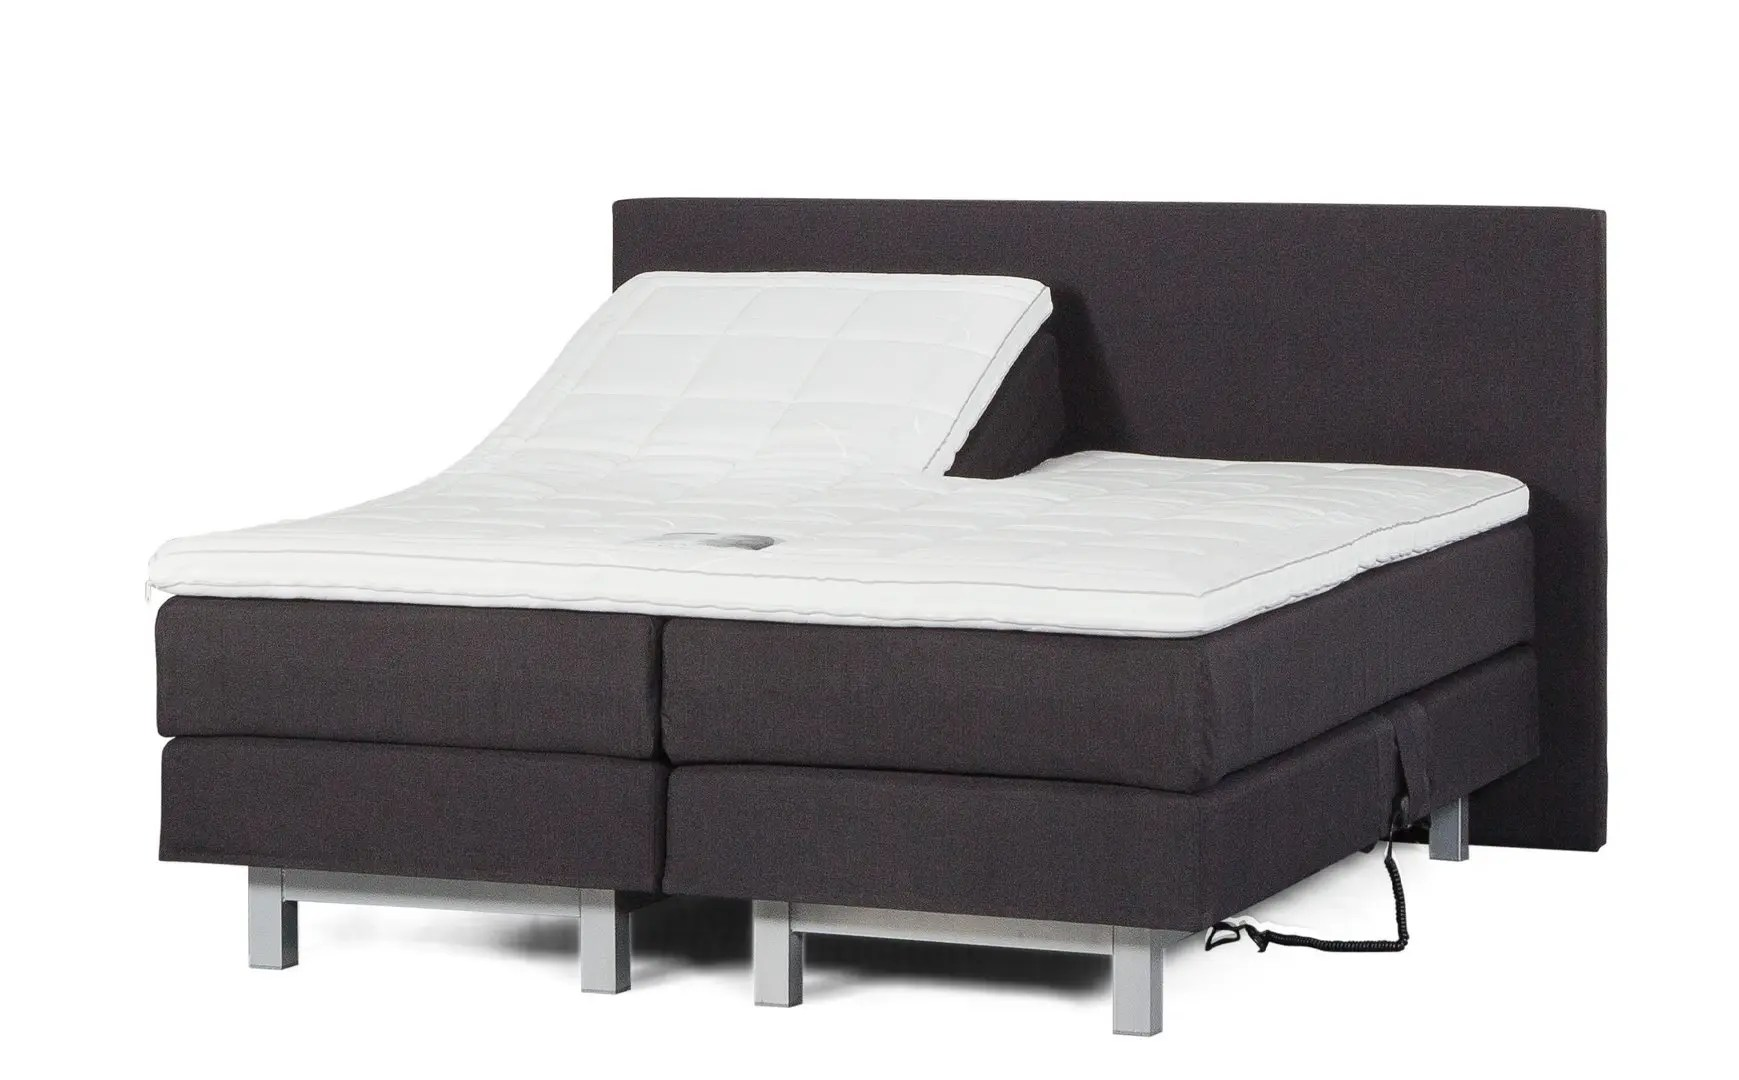 Goedkope Boxspring Compleet Boxspring 140x200 Aanbieding Simple Aanbieding Boxspring